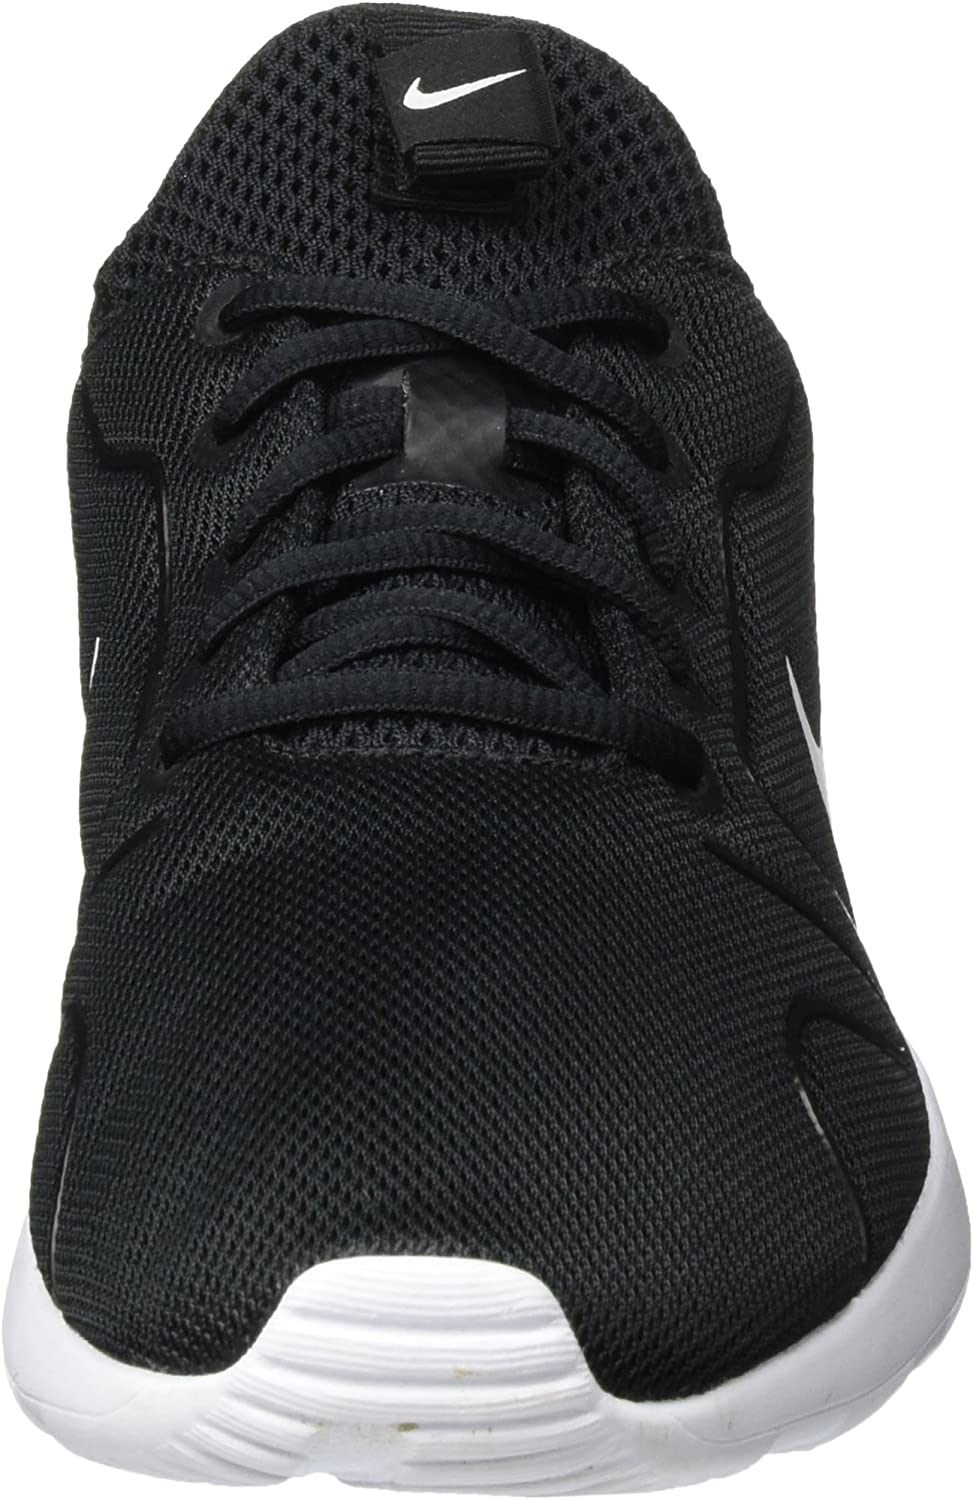 Nike Men s Kaishi 2.0 Black White Running Shoe – 10.5 D M US